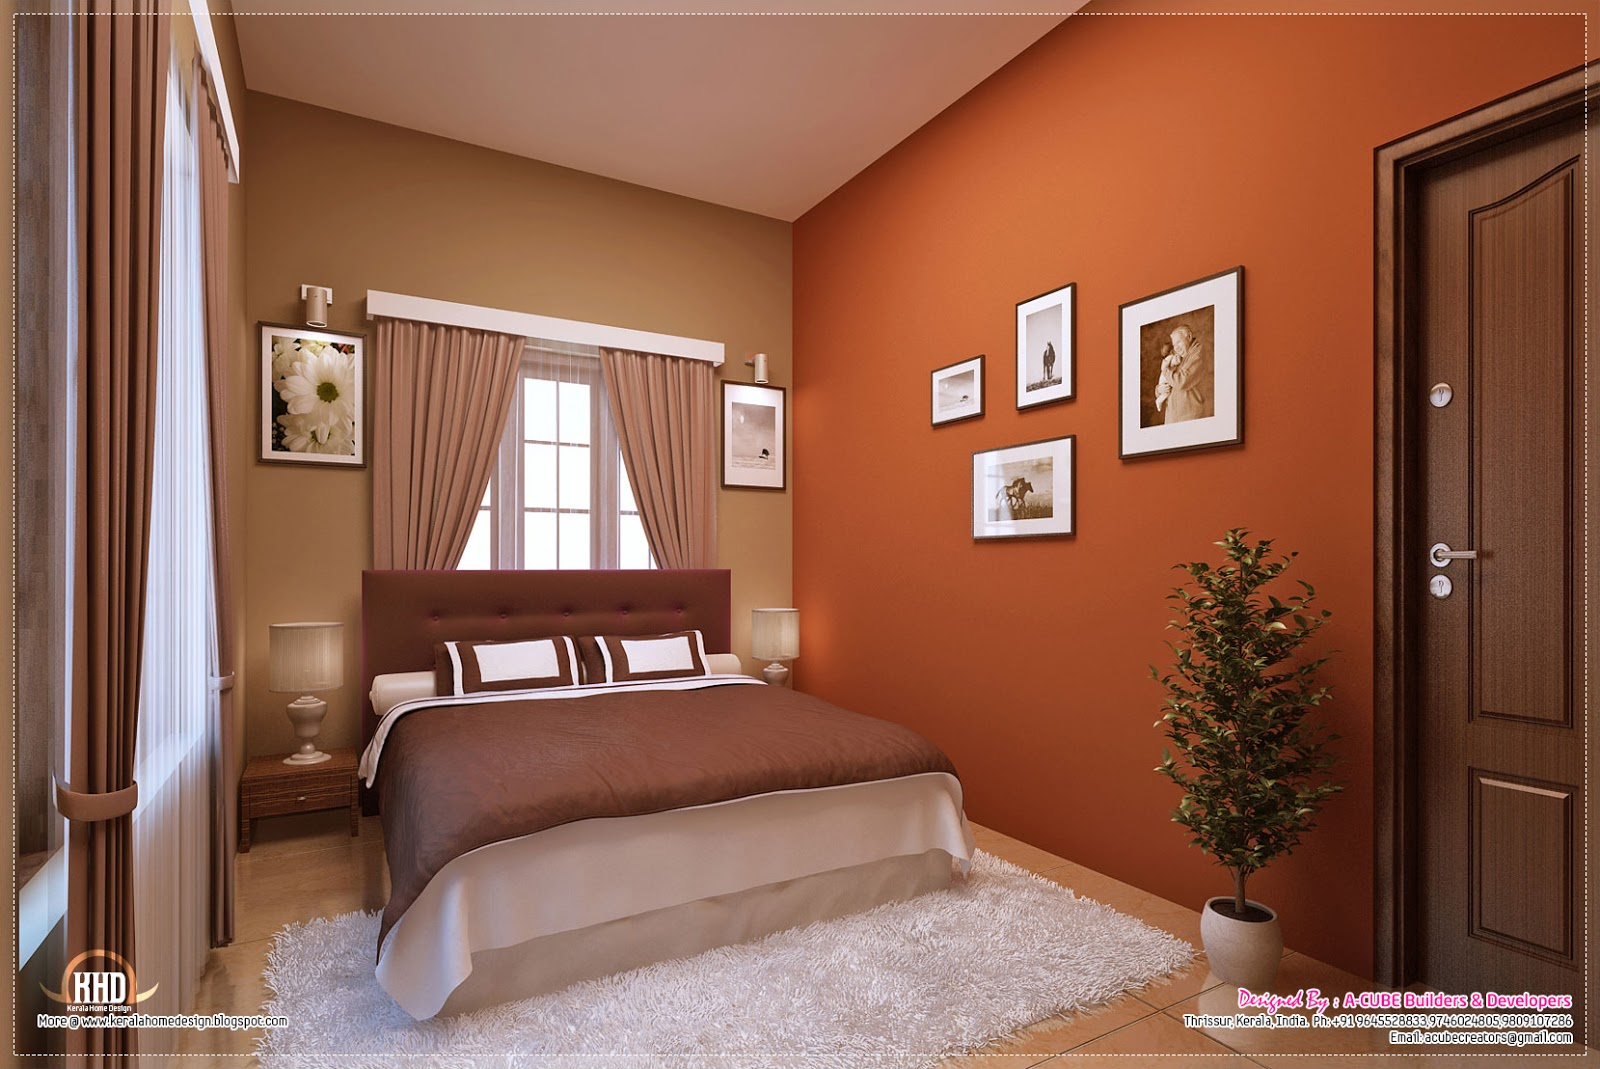 Kerala home design interior bedroom - Awesome Master Bedroom Interior Kerala Home Design And Floor Plans